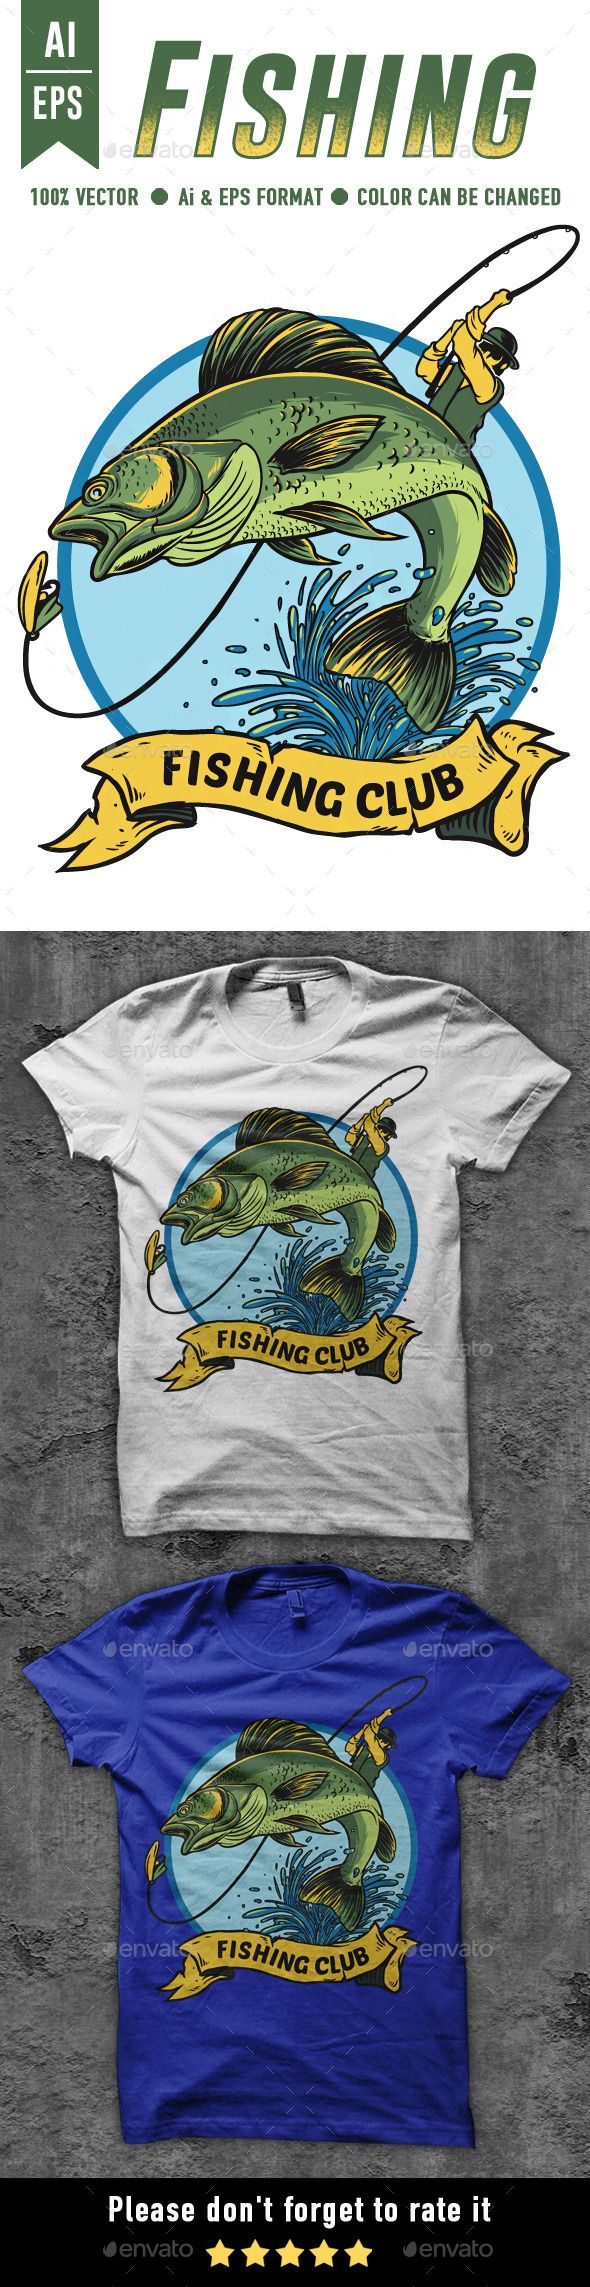 Best photos of t shirt coloring template t shirt drawing - Fishing T Shirt Design